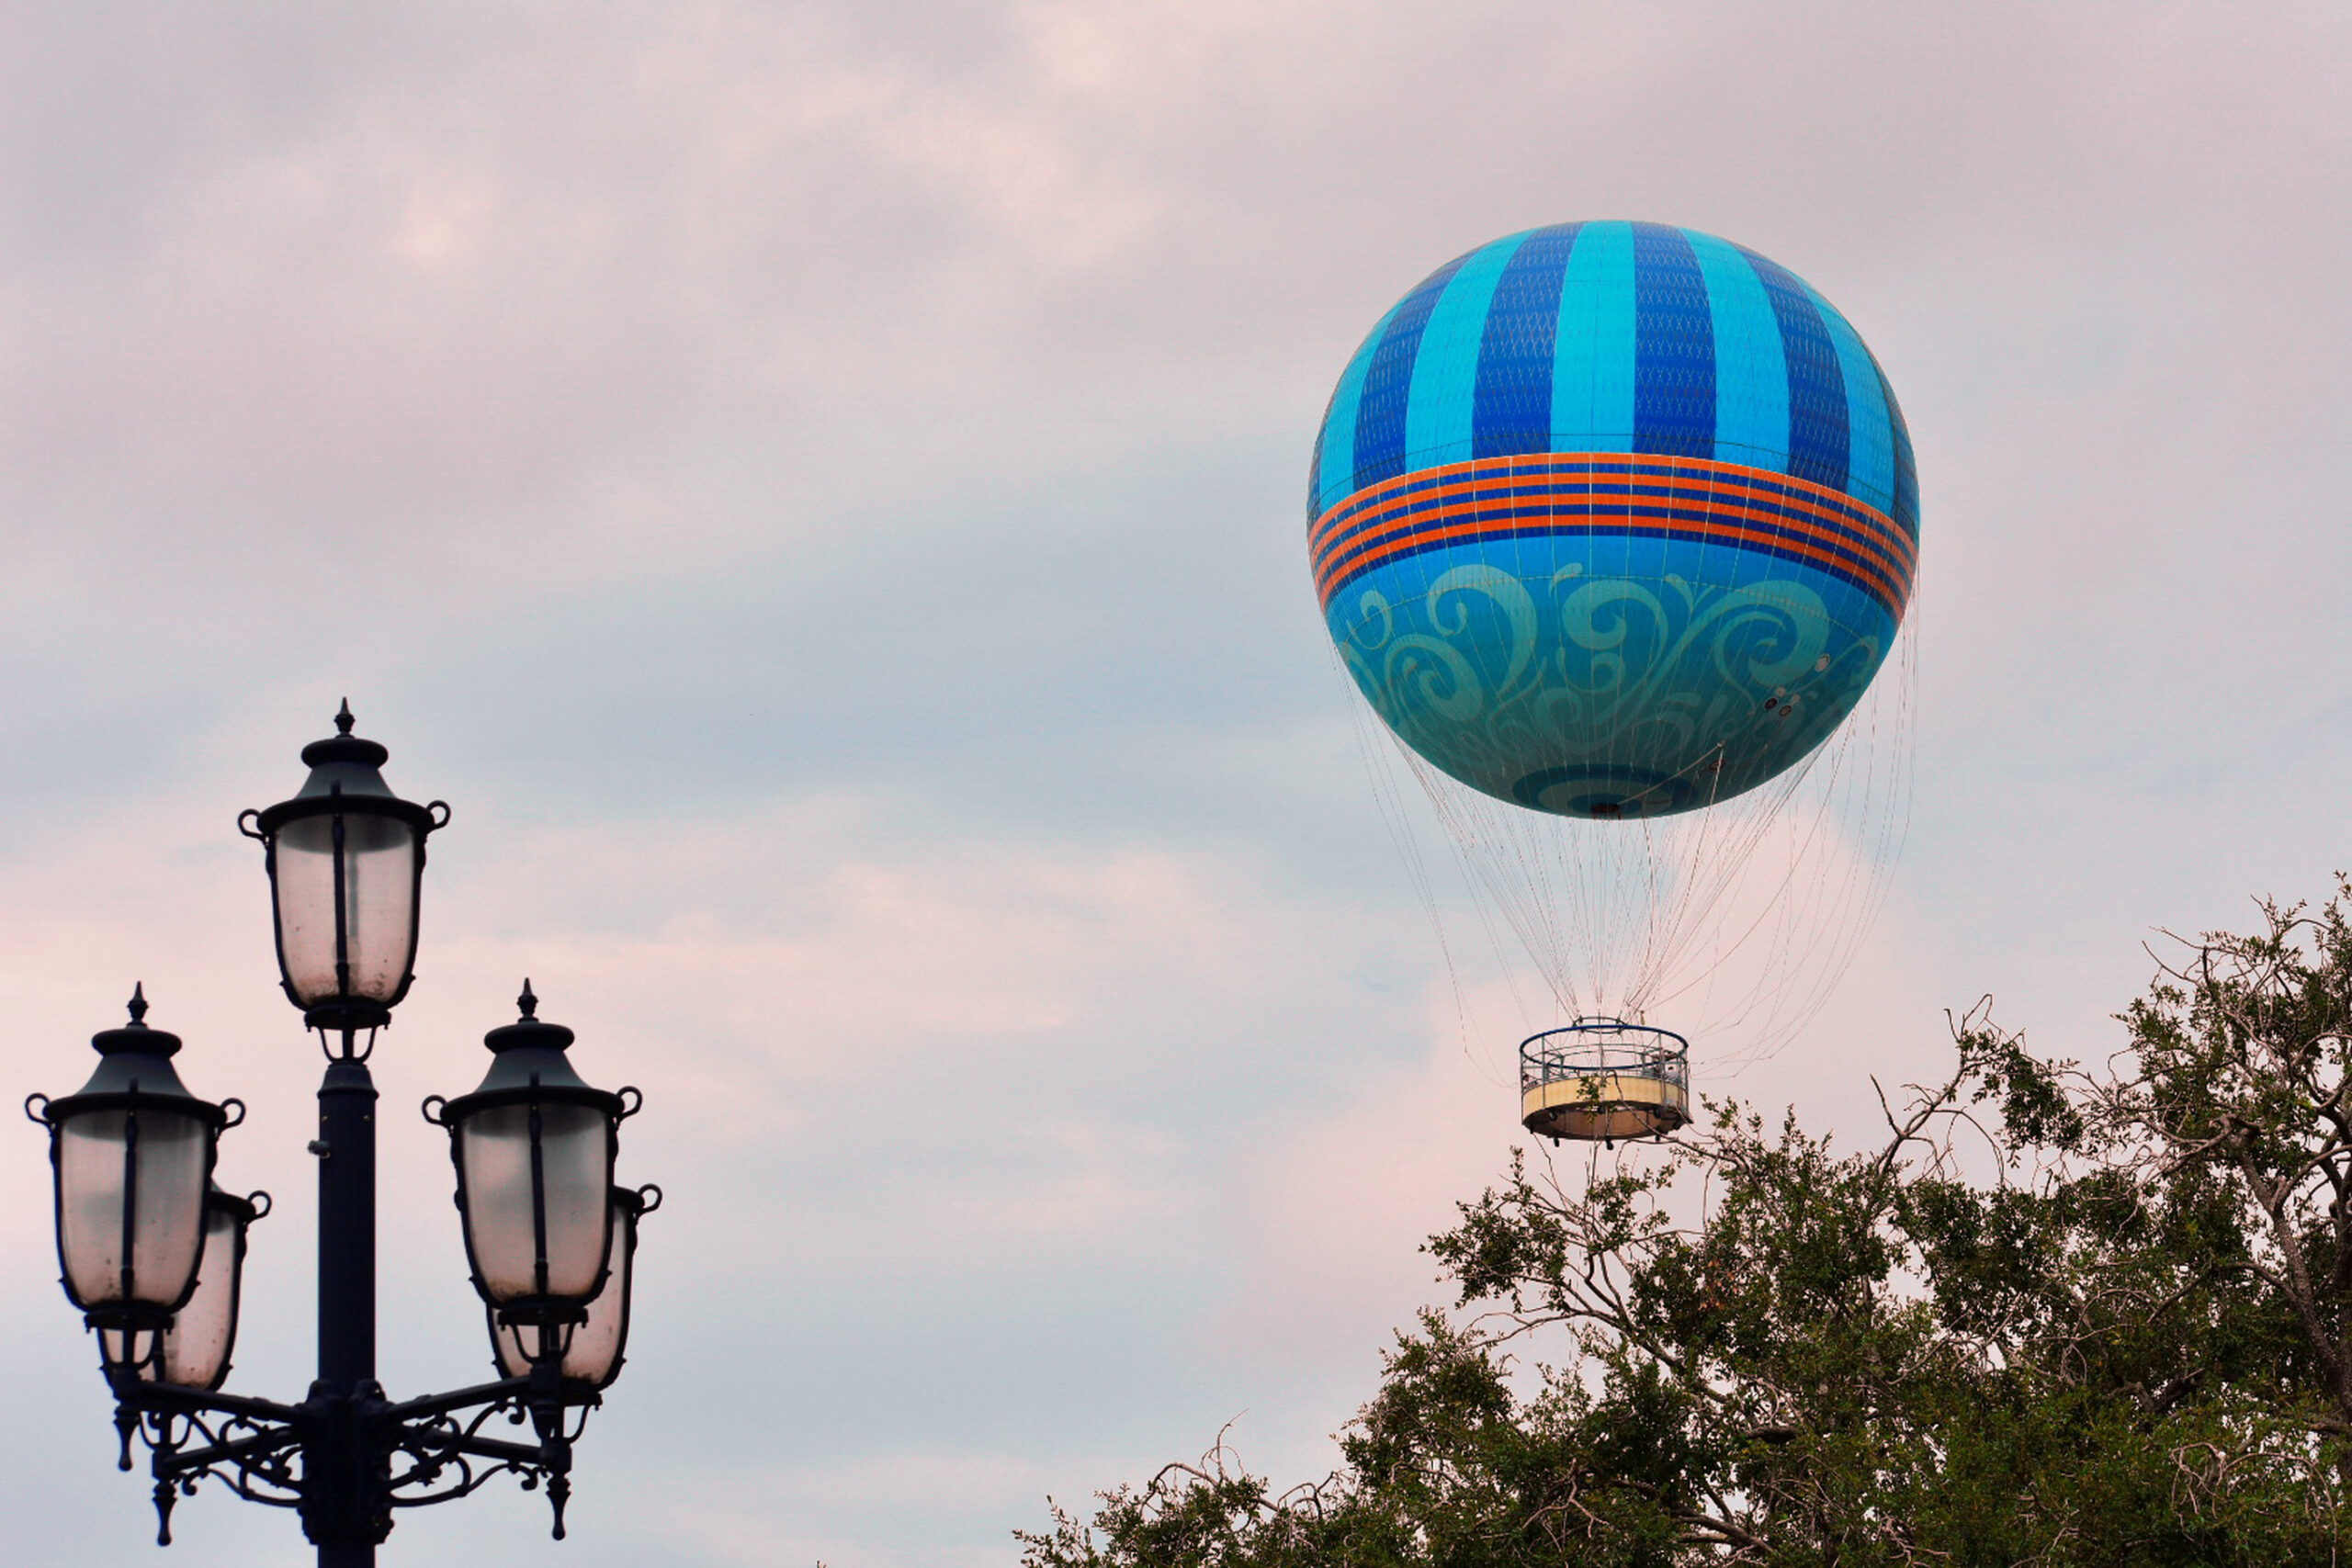 Beautiful sunset sky day with flying air balloon in Lake Buena Vista.